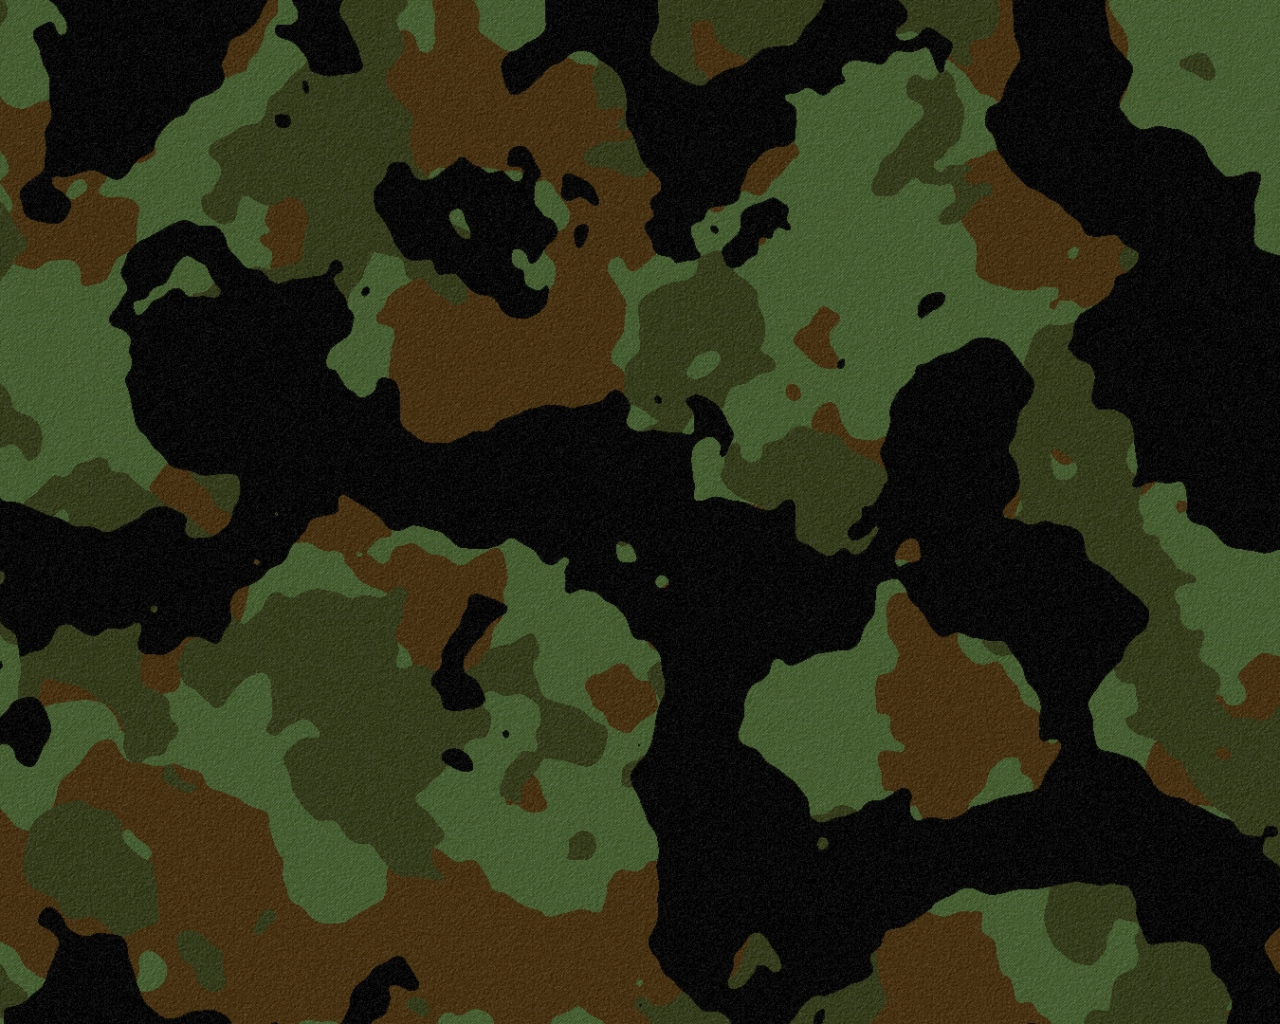 Military texture wallpapers hd backgrounds preview wallpaper military background spots texture 3840x2400 toneelgroepblik Choice Image